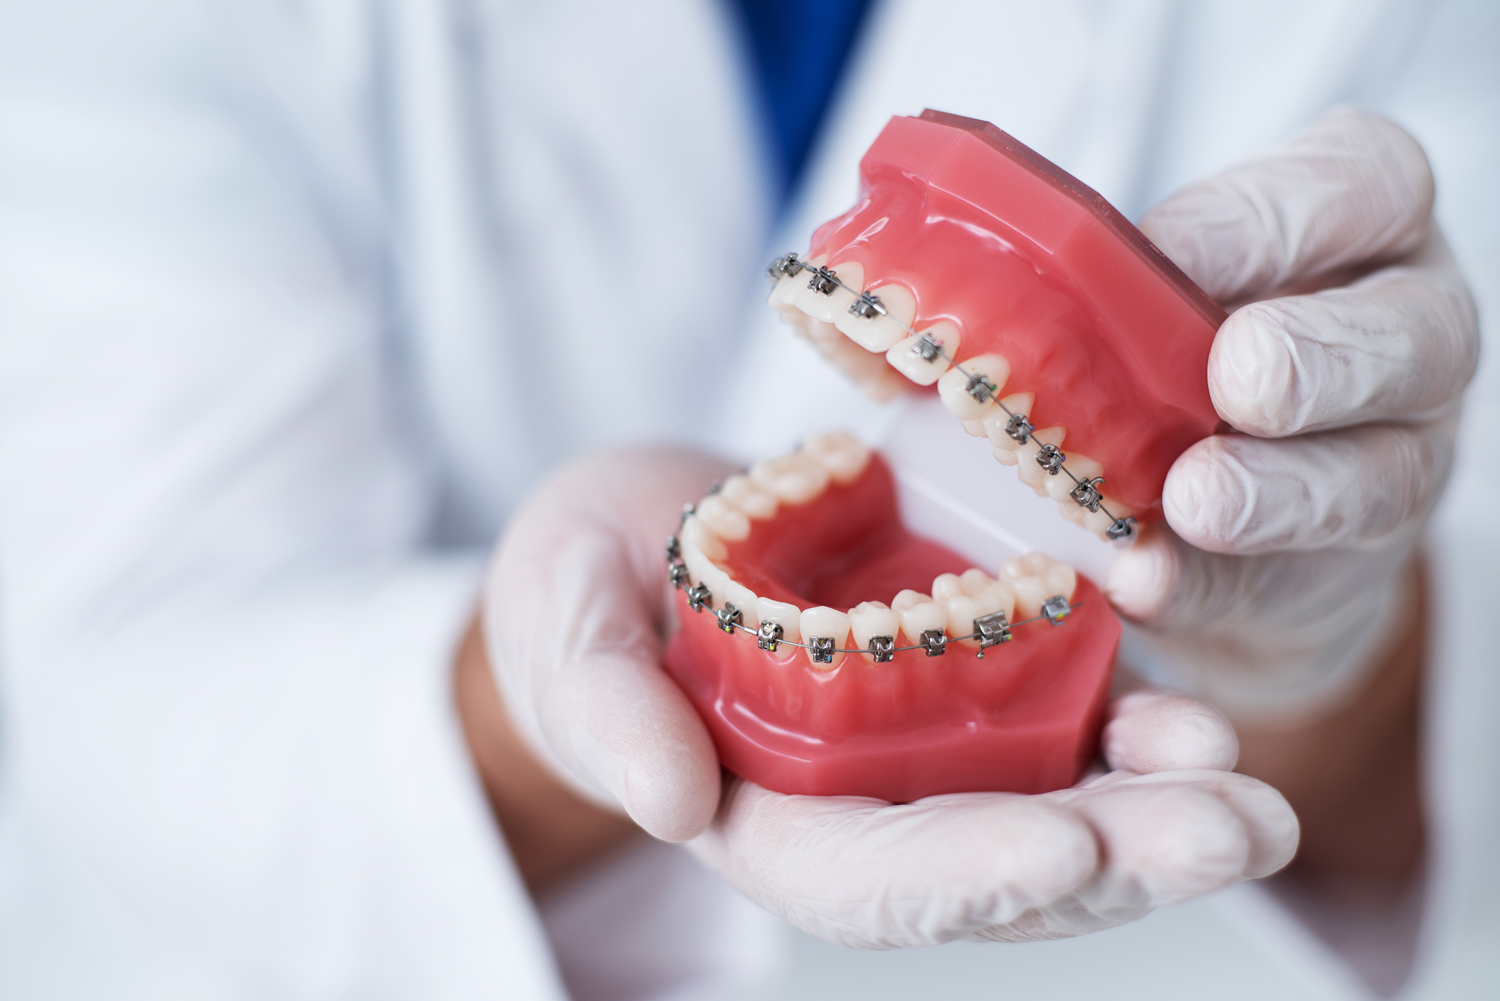 doctor-orthodontist-shows-how-system-braces-teeth-is-arranged